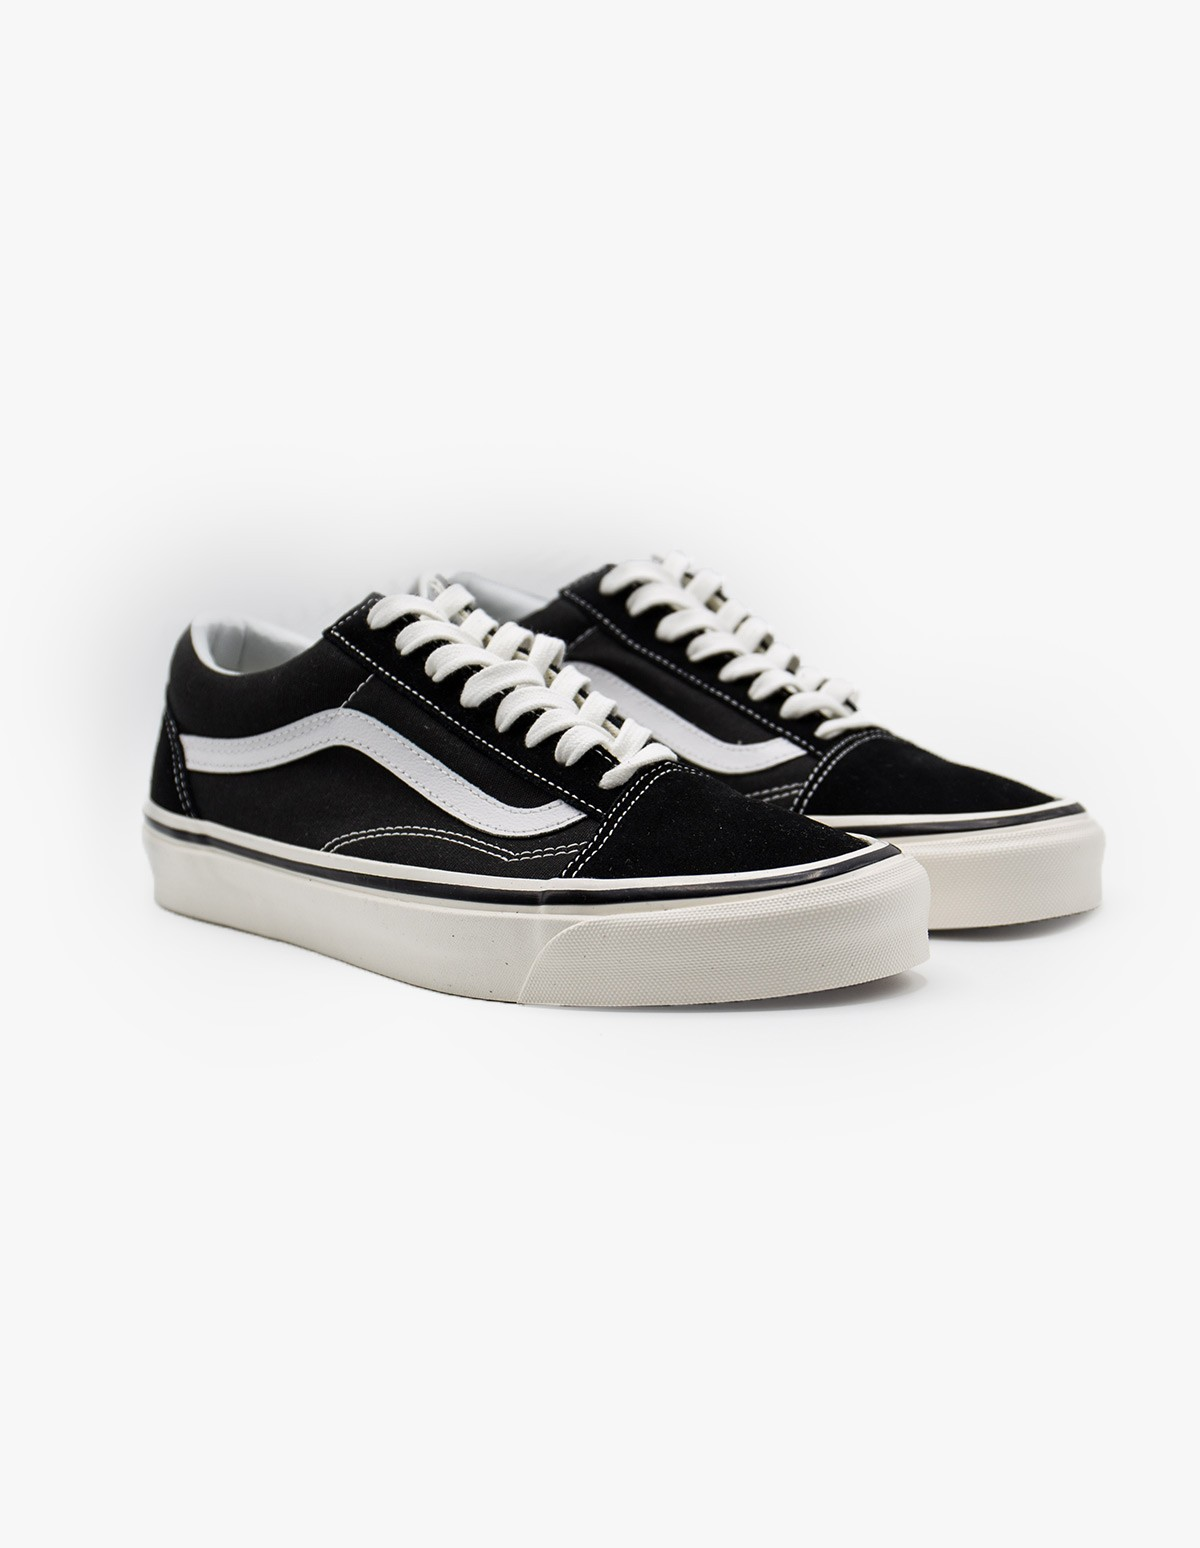 Vans Old Skool 36 DX in Black